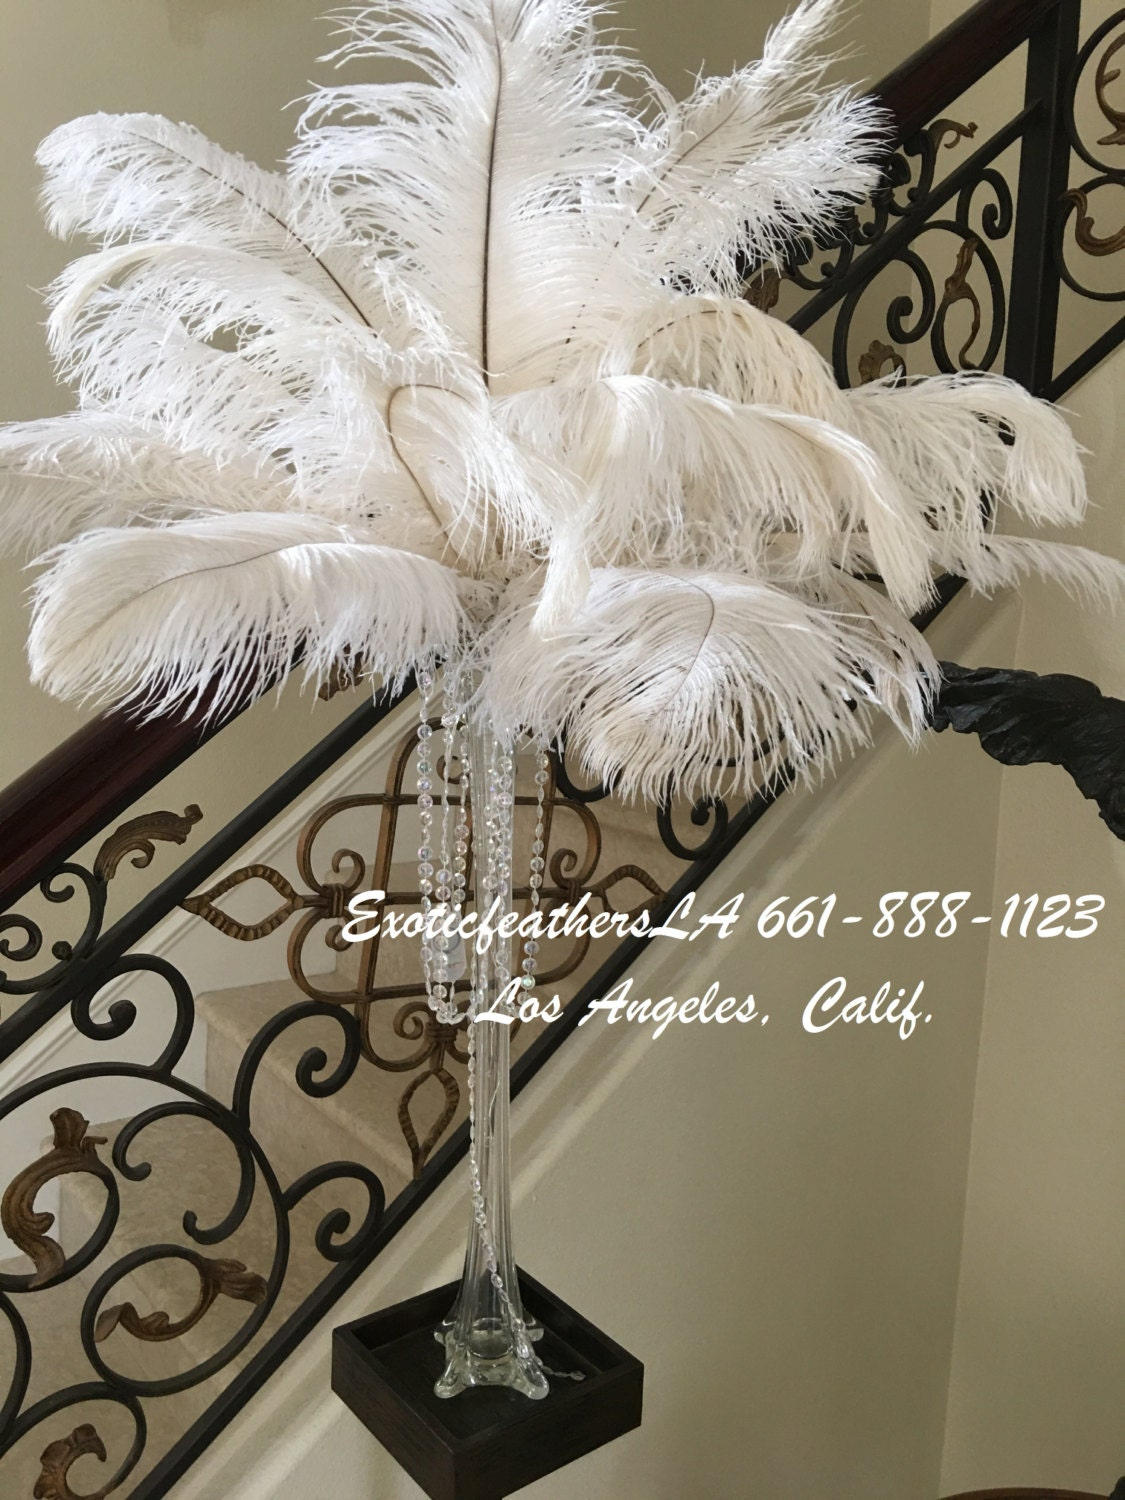 Pcs white ostrich feathers quot u s a supplier